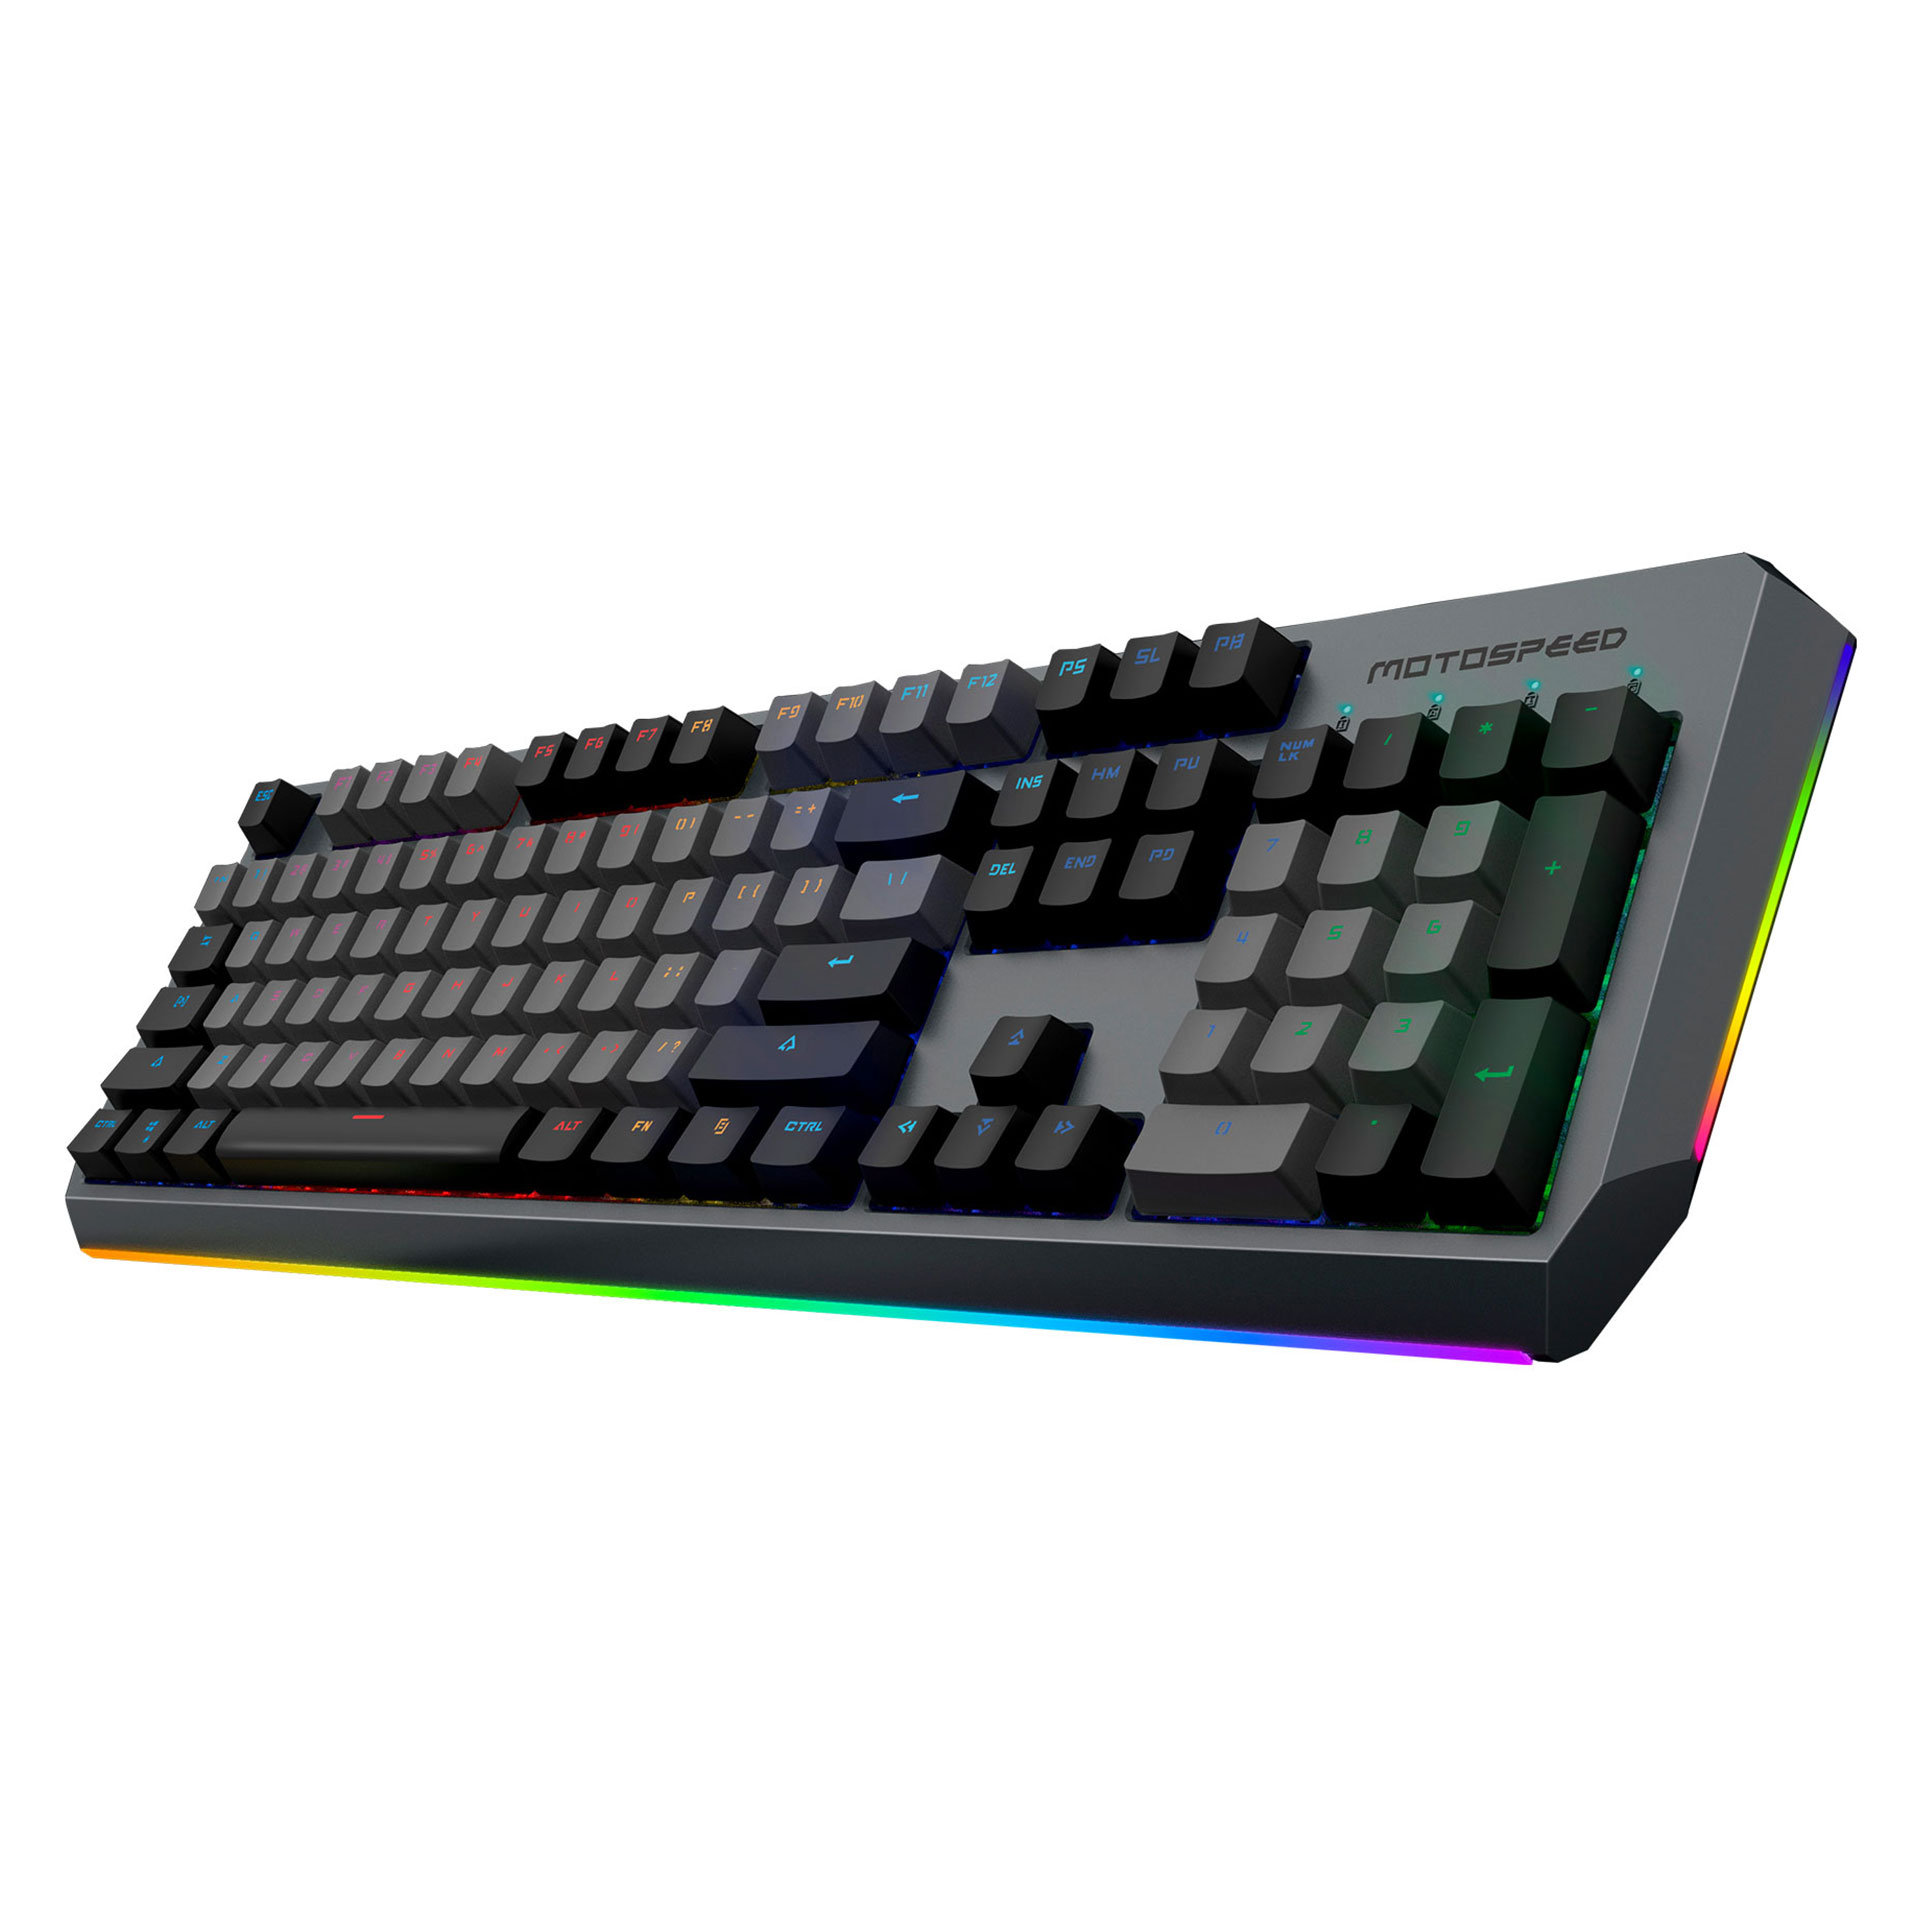 MOTOSPEED CK80 Wired Mechanical Gaming Keyboard